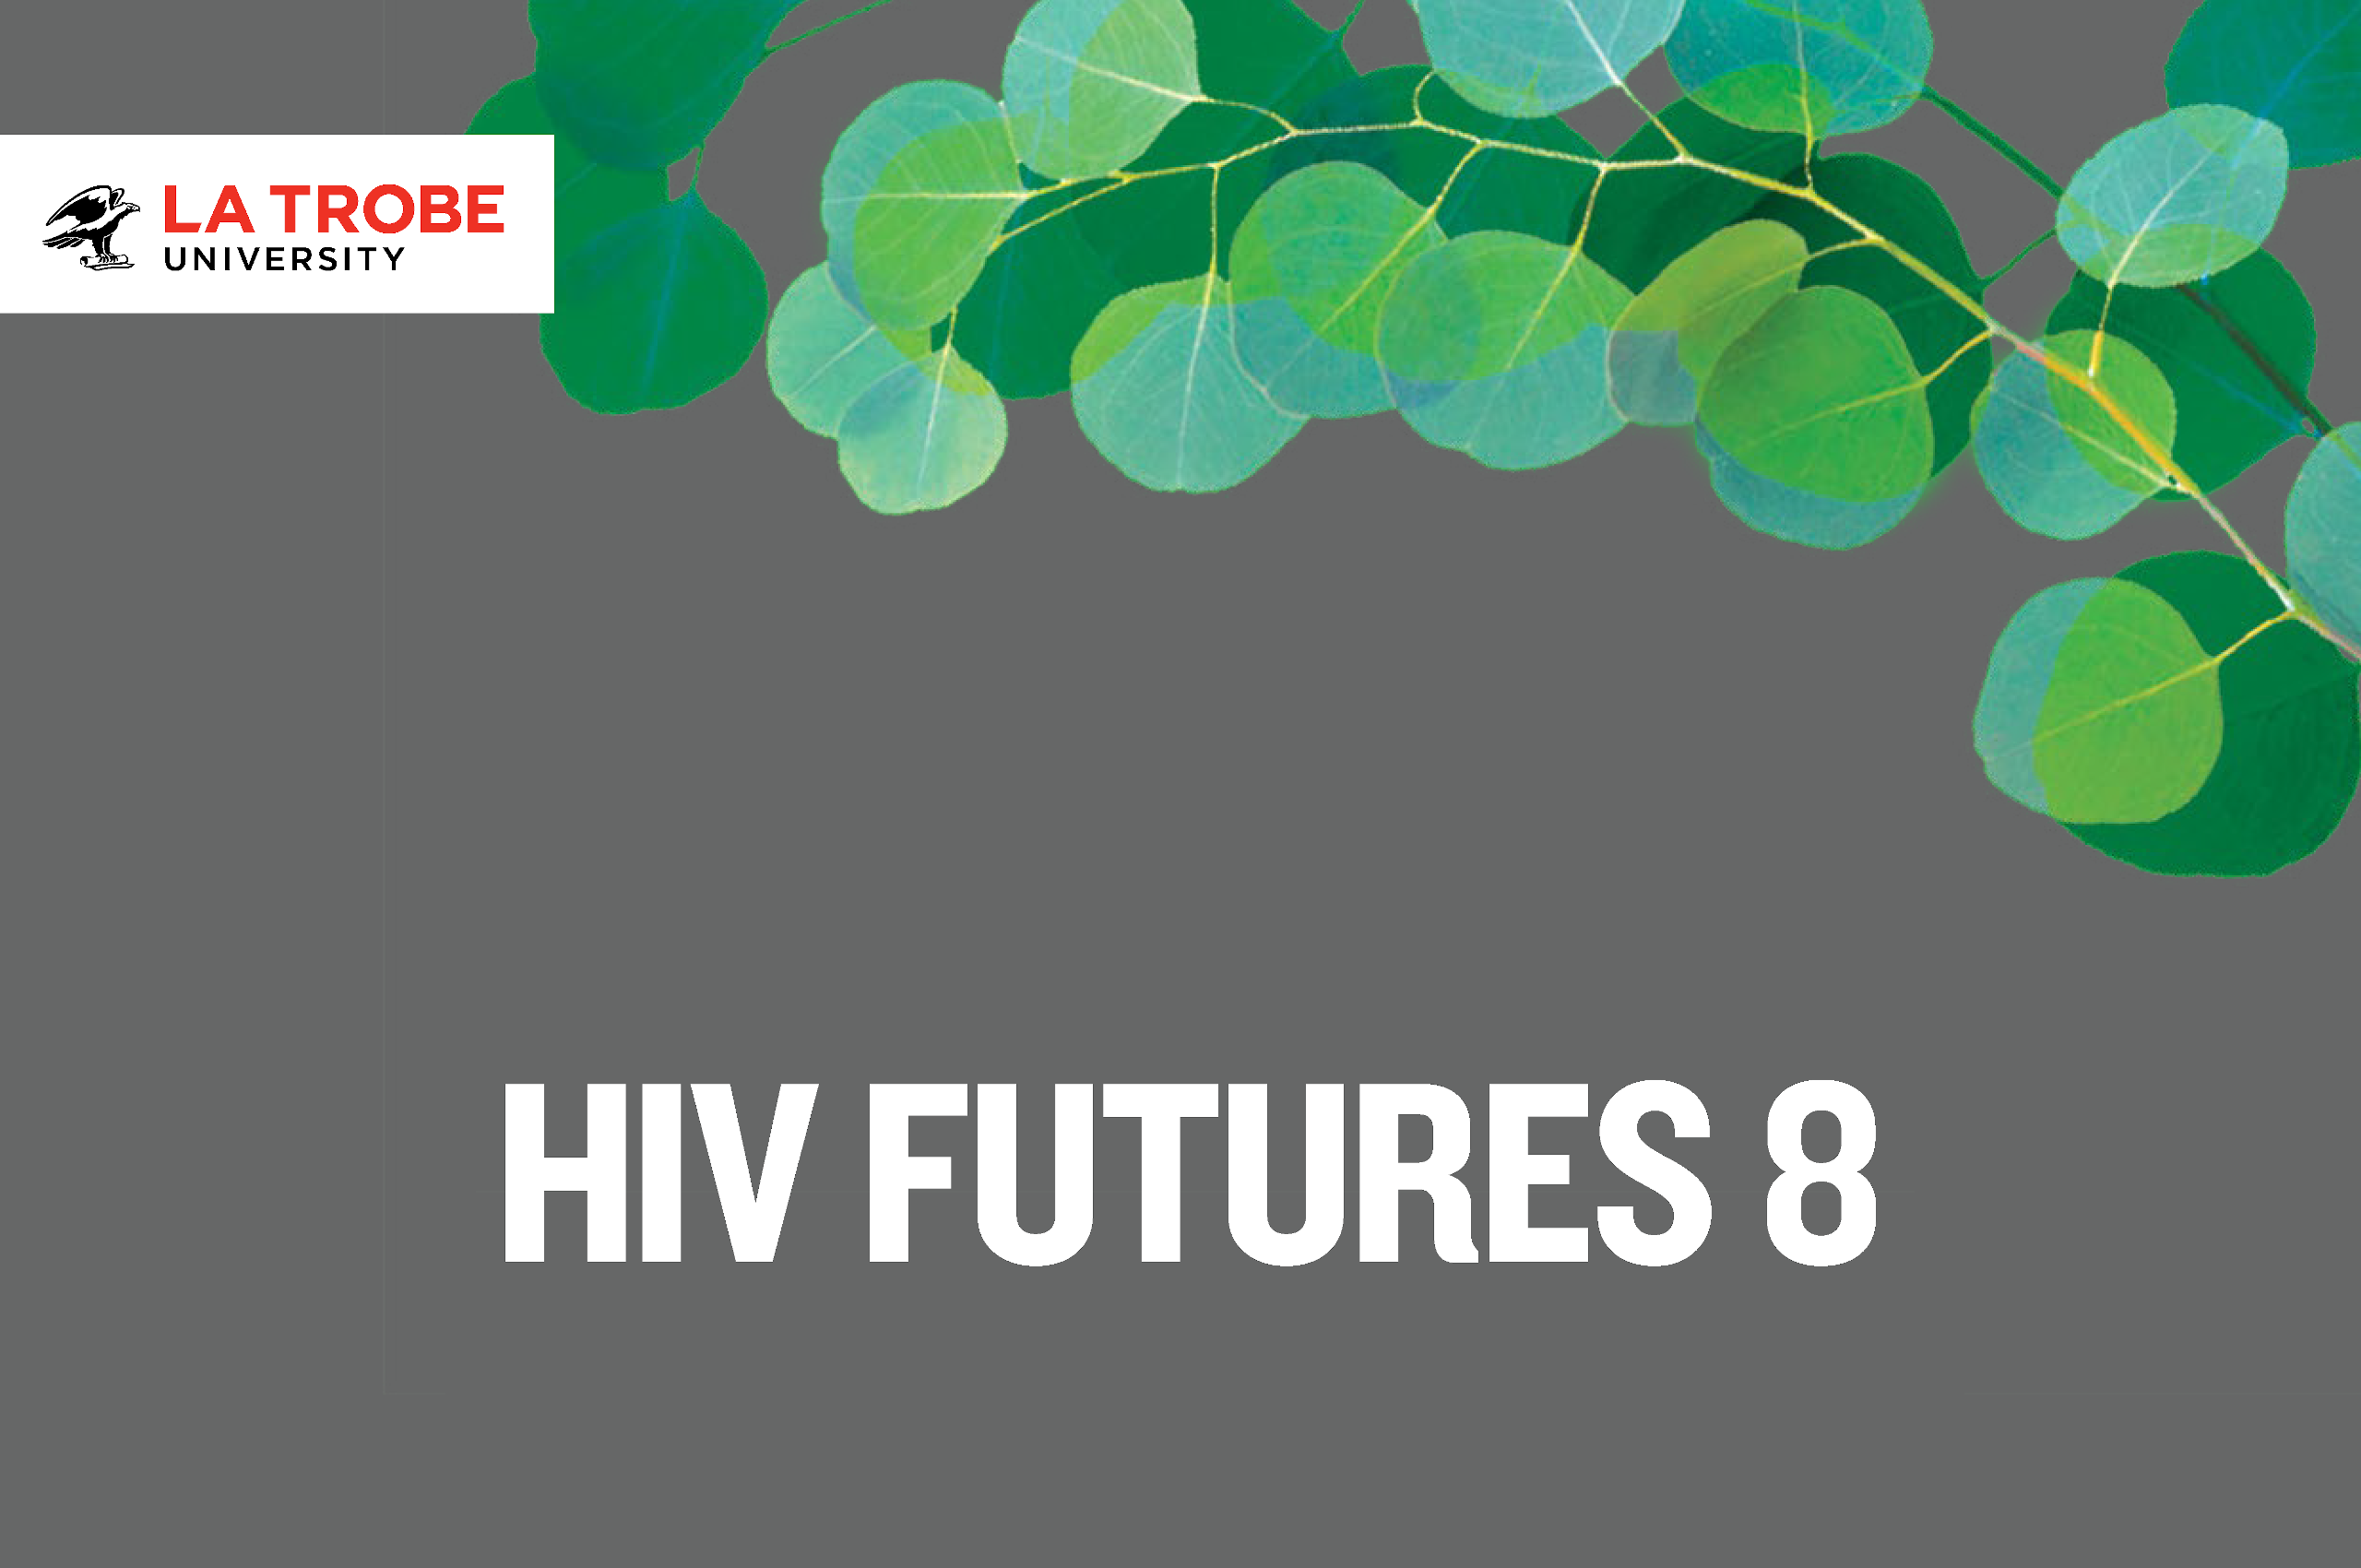 HIV Futures 8 cover with design of gum leaves and La Trobe logo